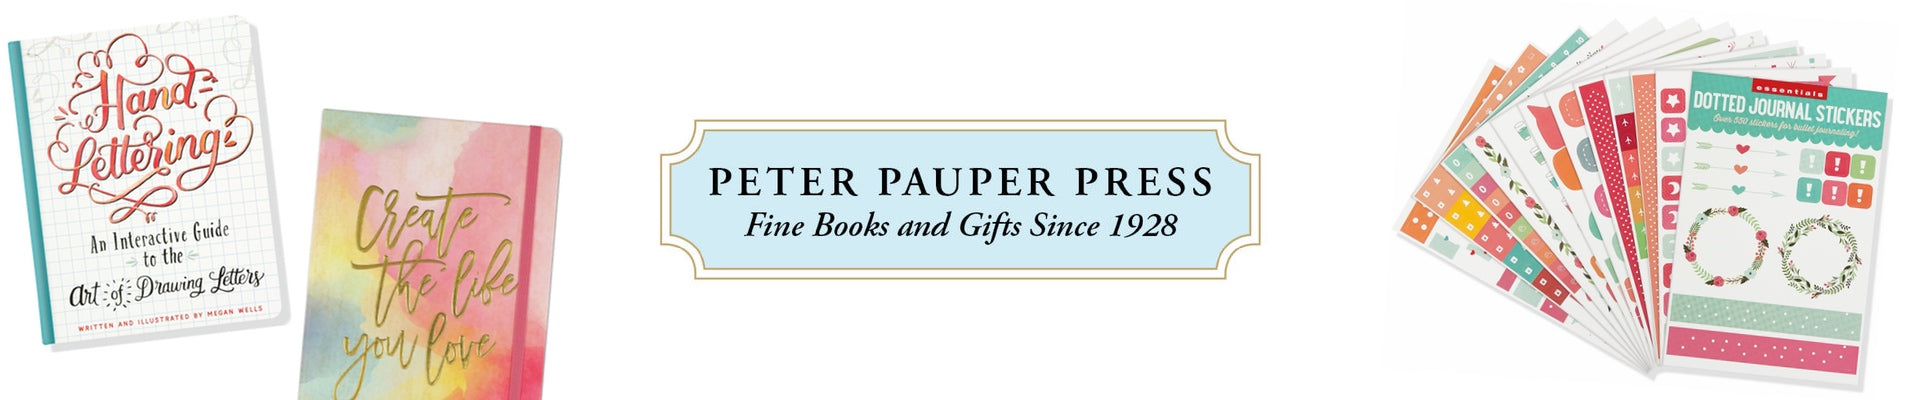 PETER PAUPER PRESS